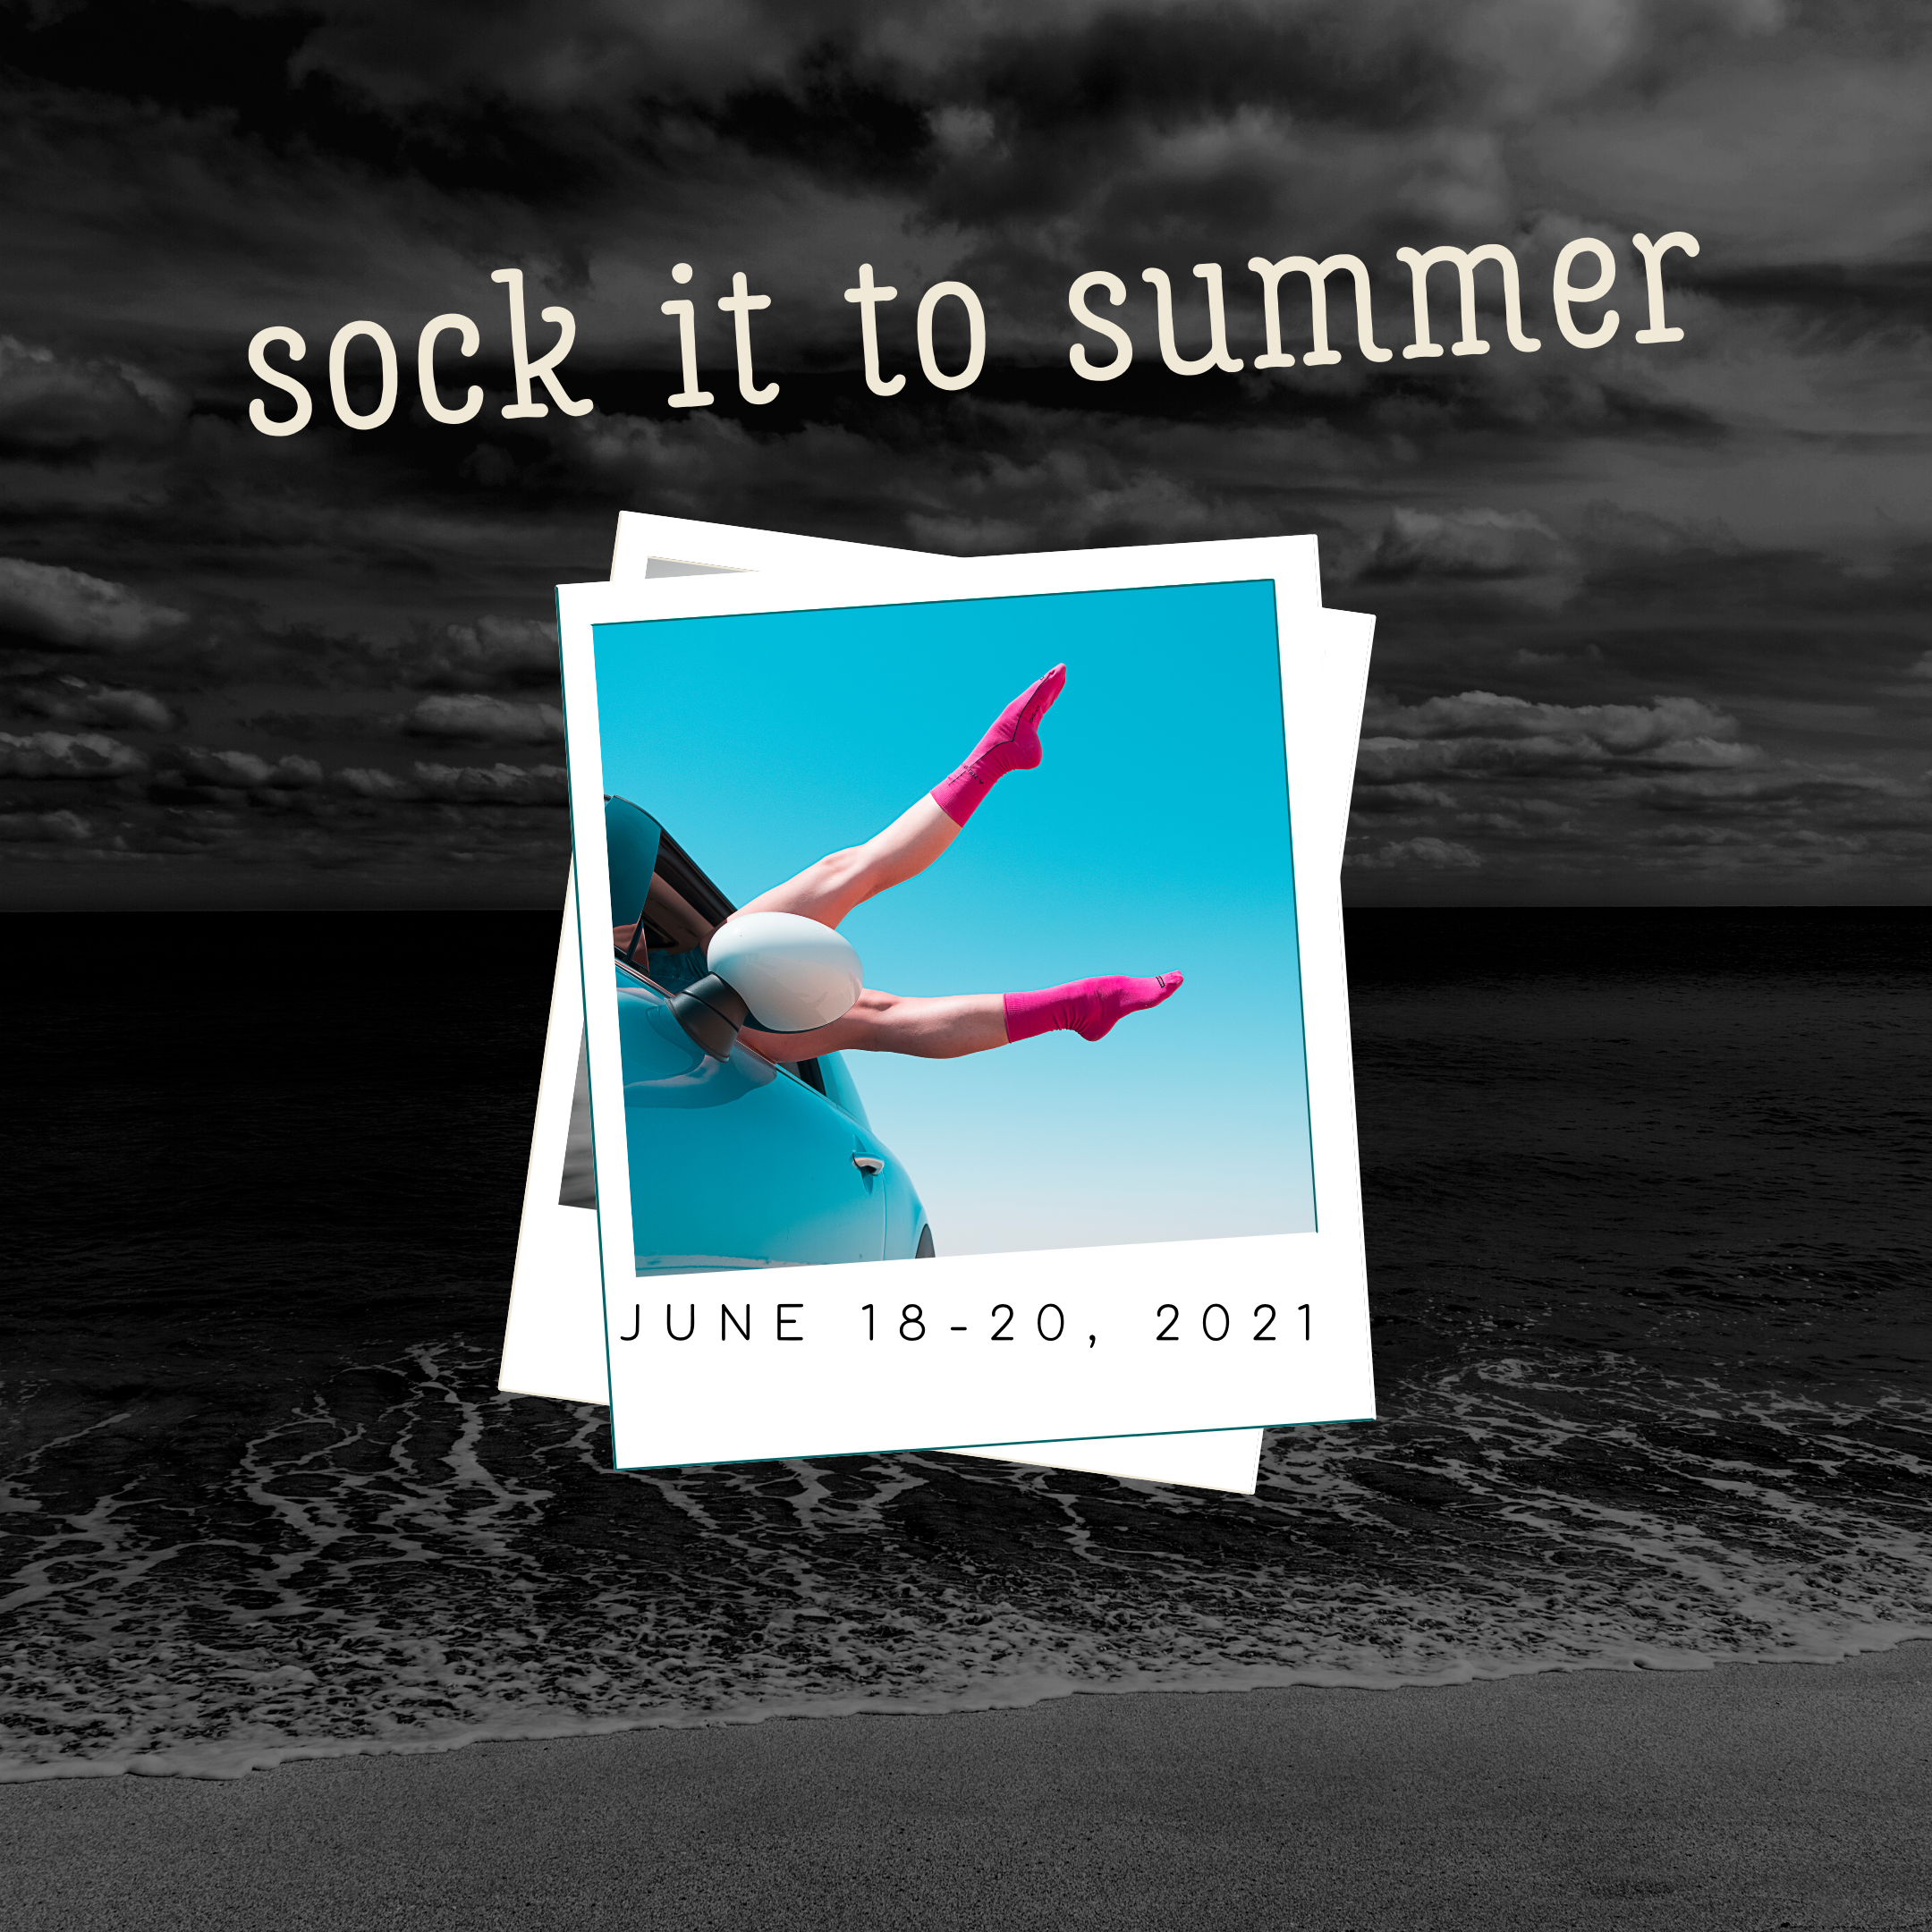 Sock it to Summer